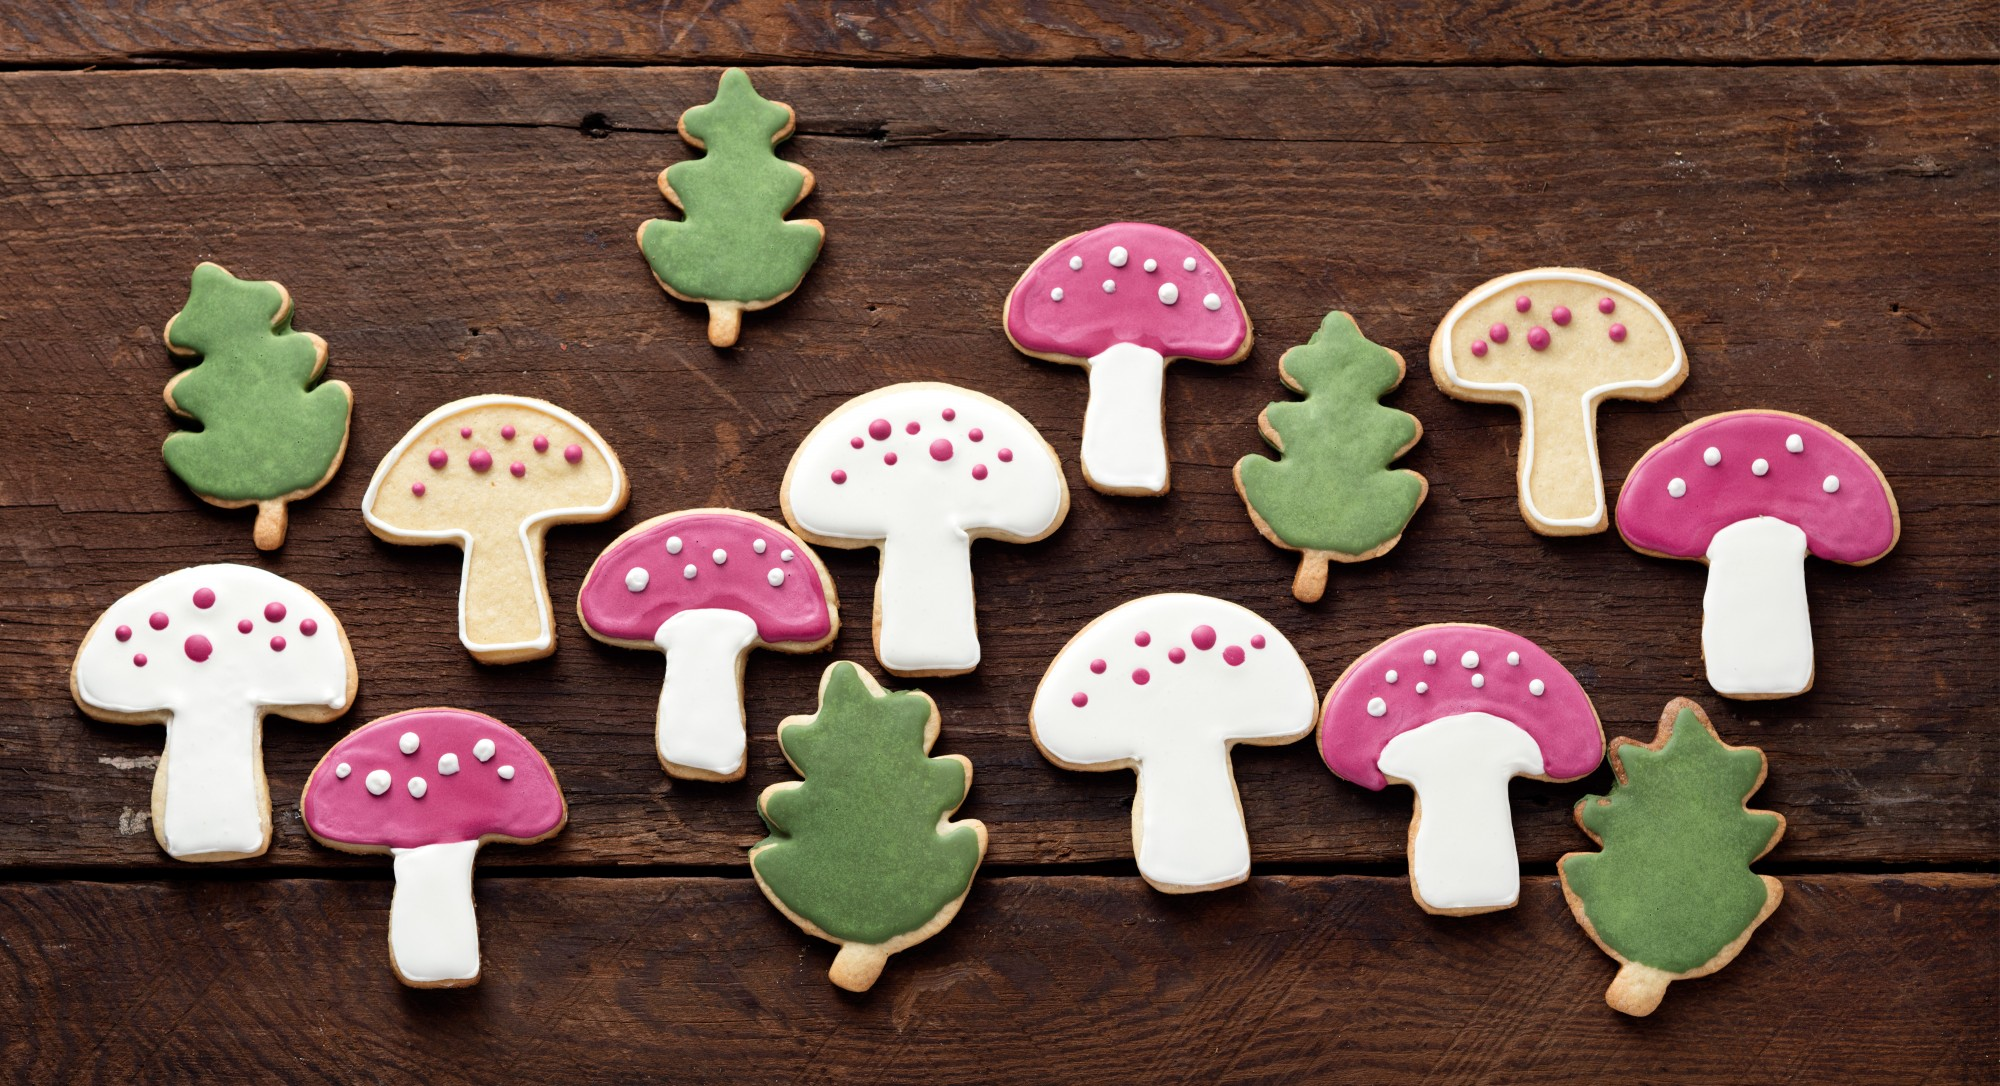 Woodland-Inspired Sugar Cookies to Make Any Holiday Tray More Eye-Catching